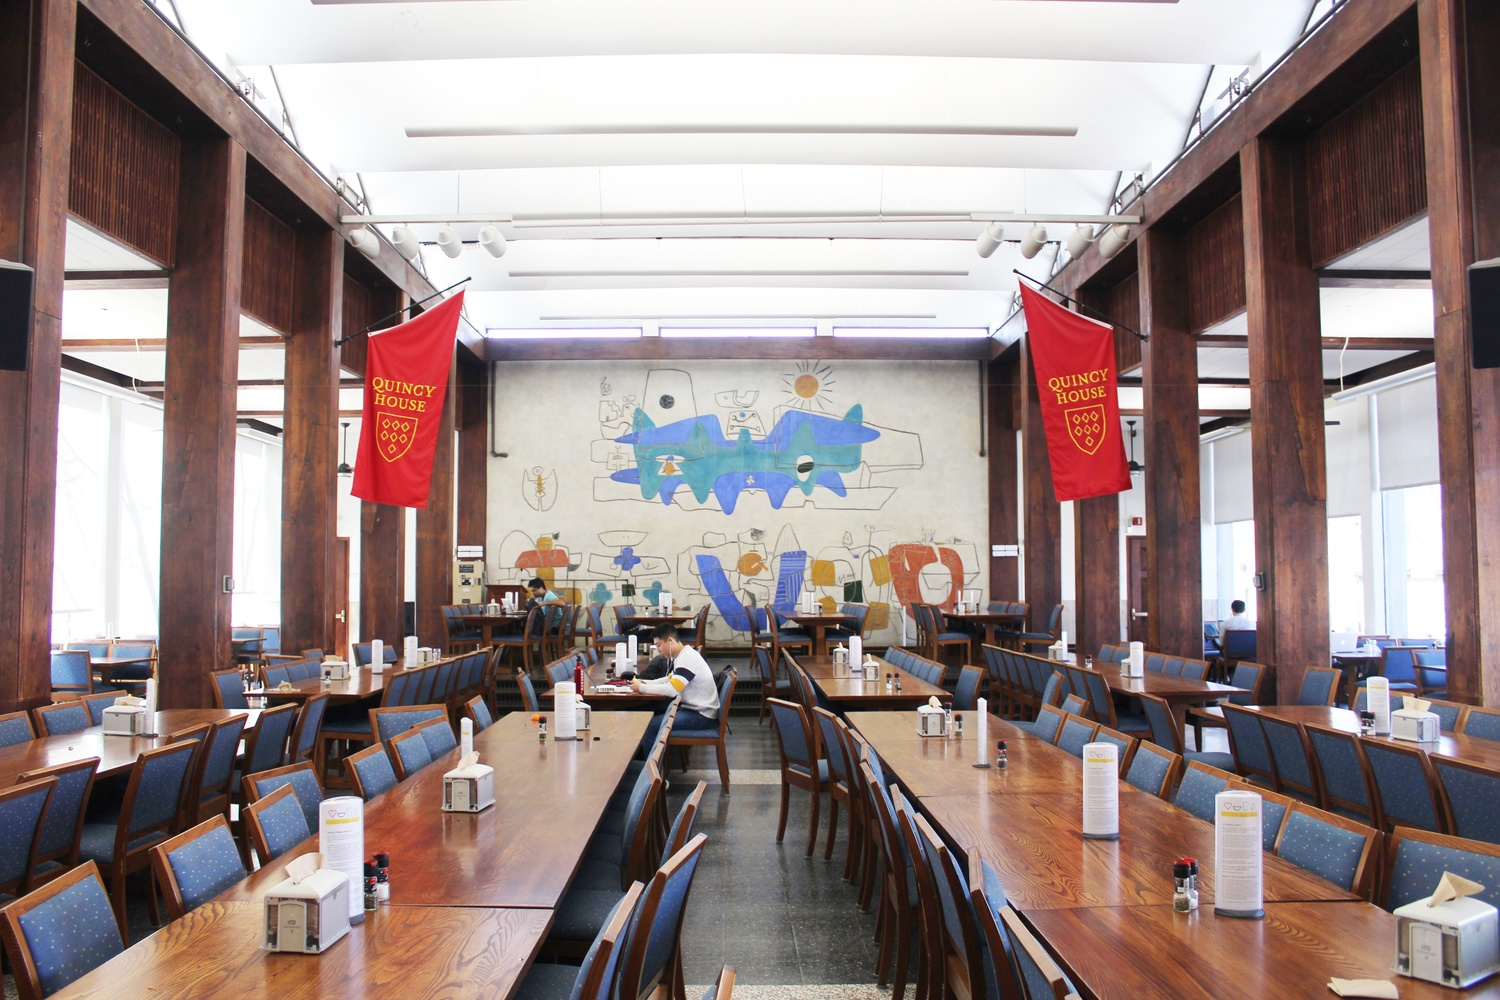 Quincy Dining Hall